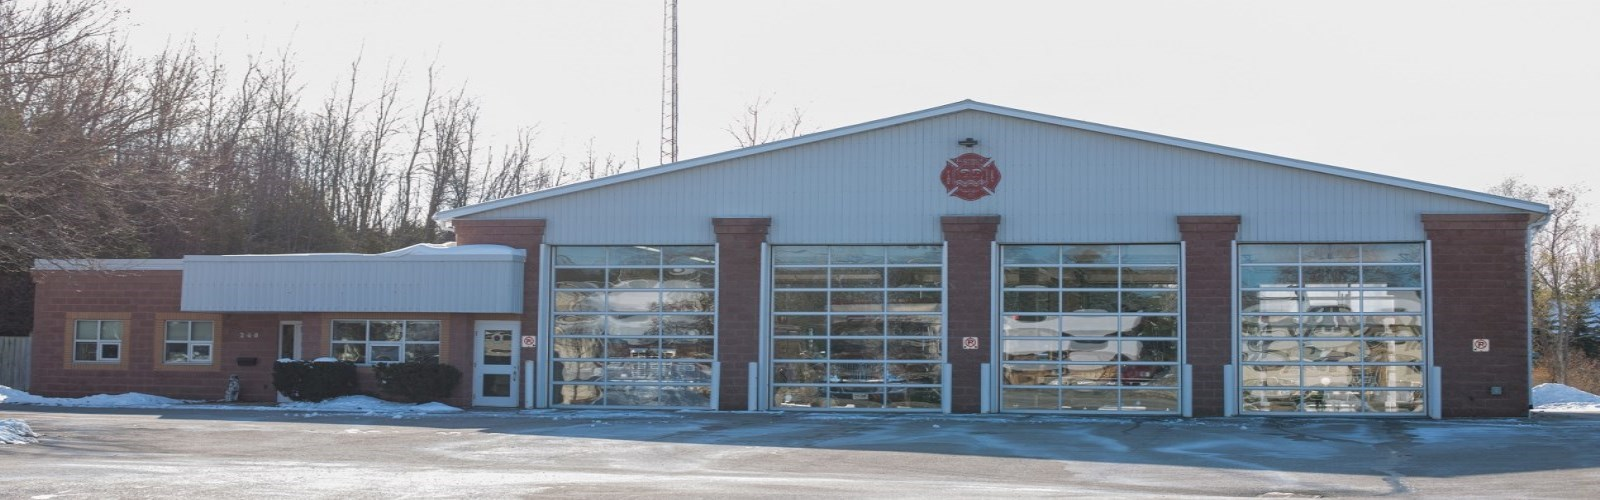 Tow of Goderich Fire Hall, 248 Suncoast Drive East